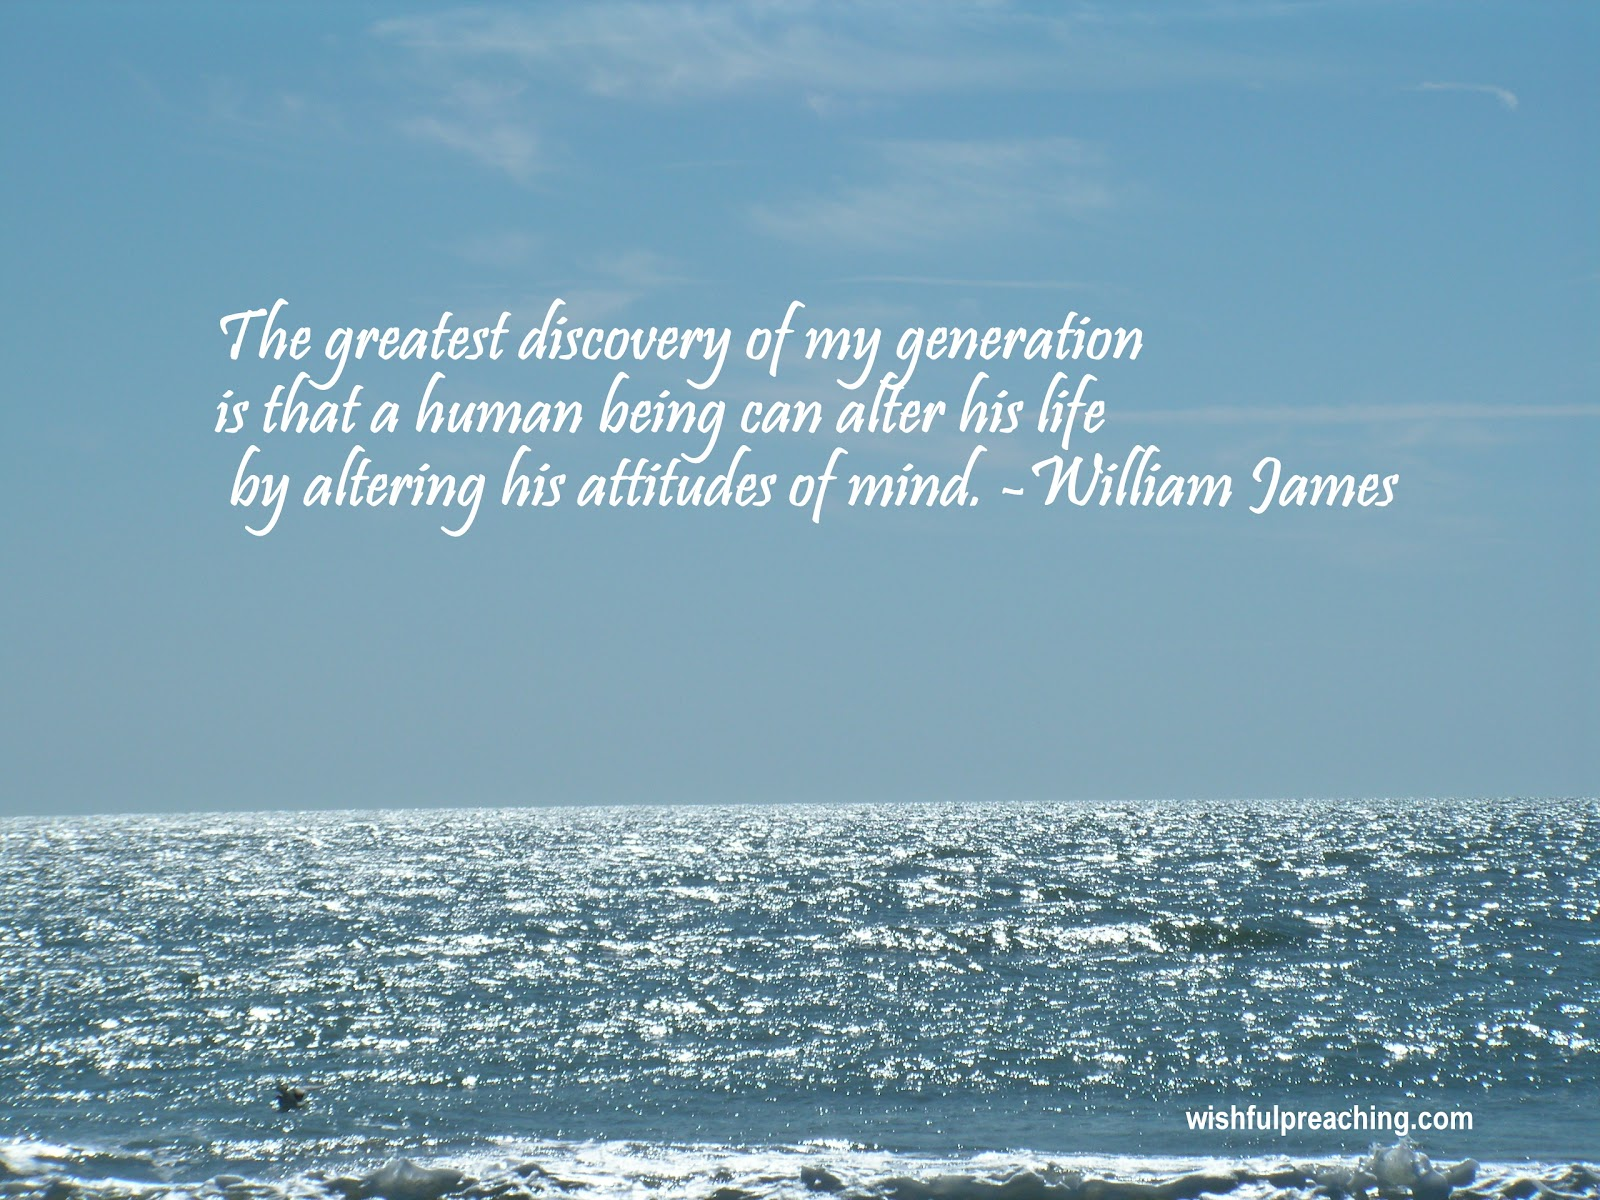 Quotes About Discovery And Exploration Quotesgram: Discovery Life Quotes And Sayings. QuotesGram